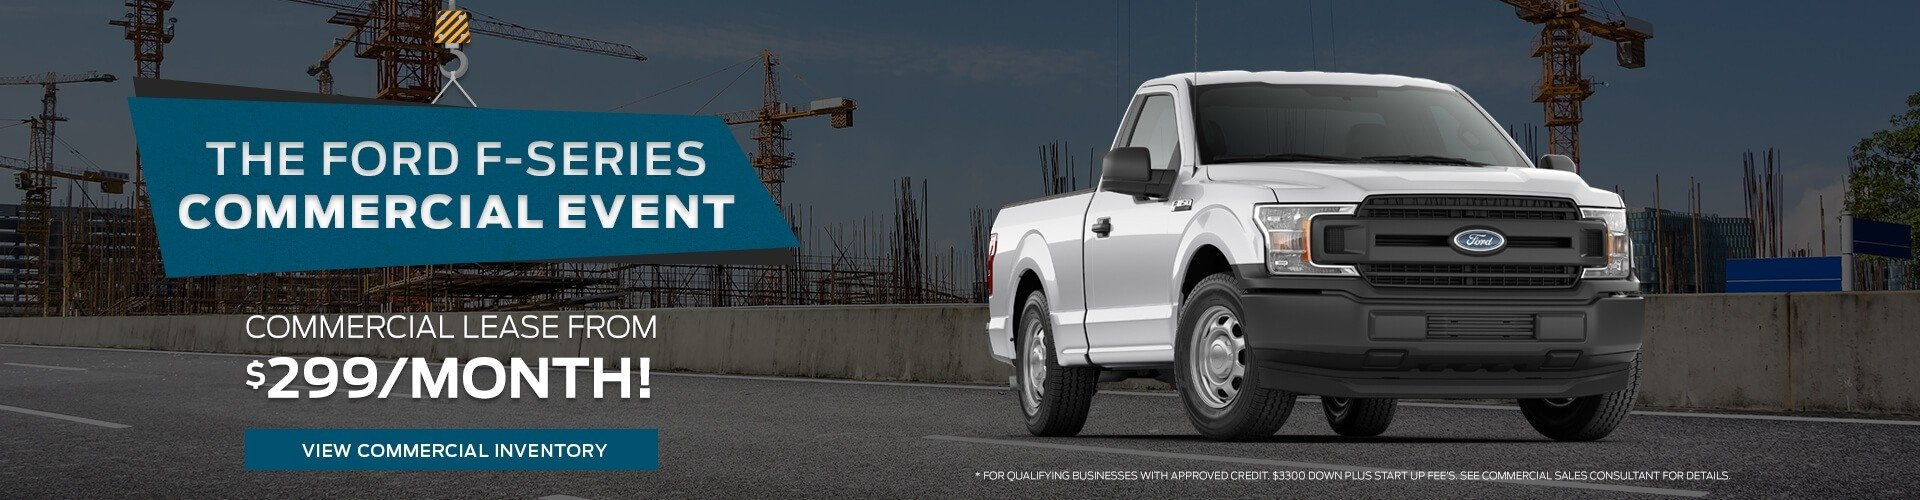 Ford F-Series Commercial Event